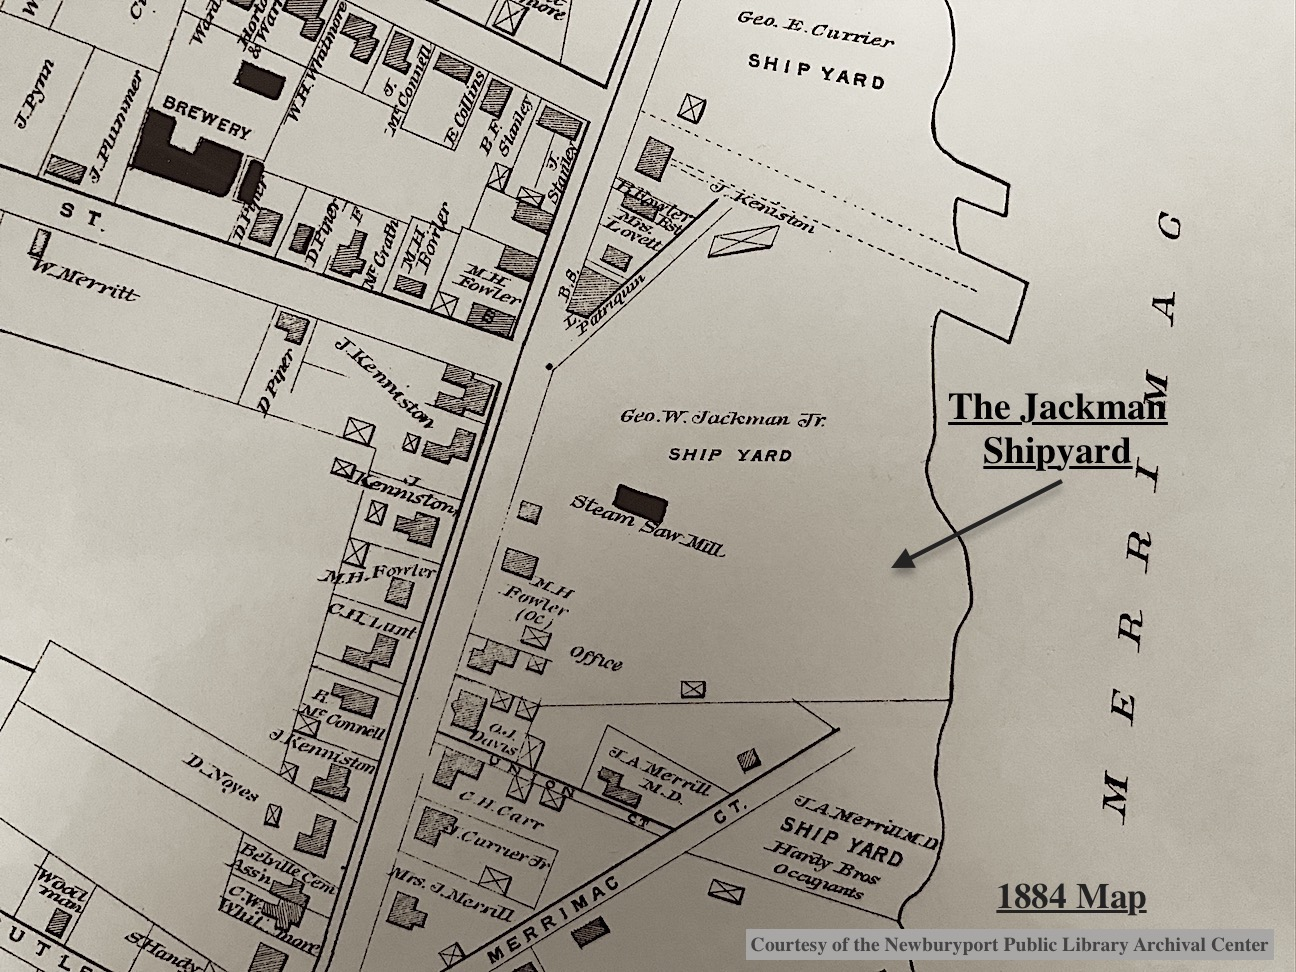 The Jackman Shipyard 1884 Map